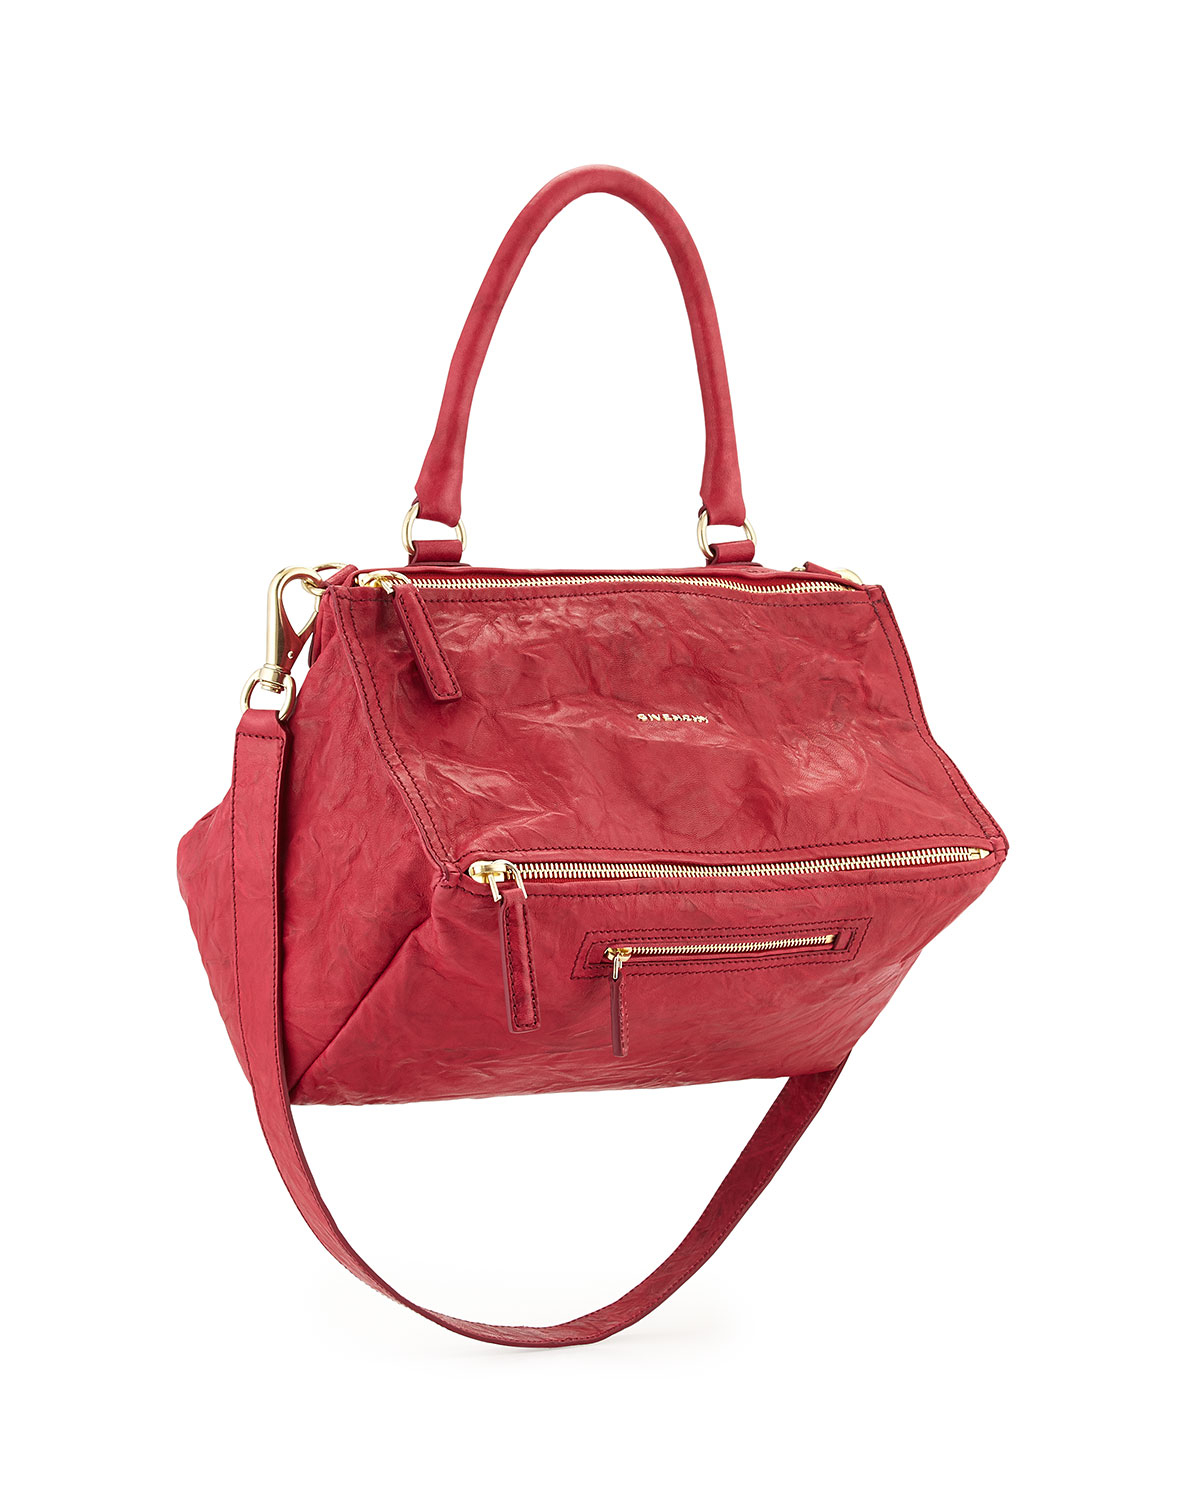 Lyst - Givenchy Pandora Medium Leather Shoulder Bag in Red fdd3d25736fee